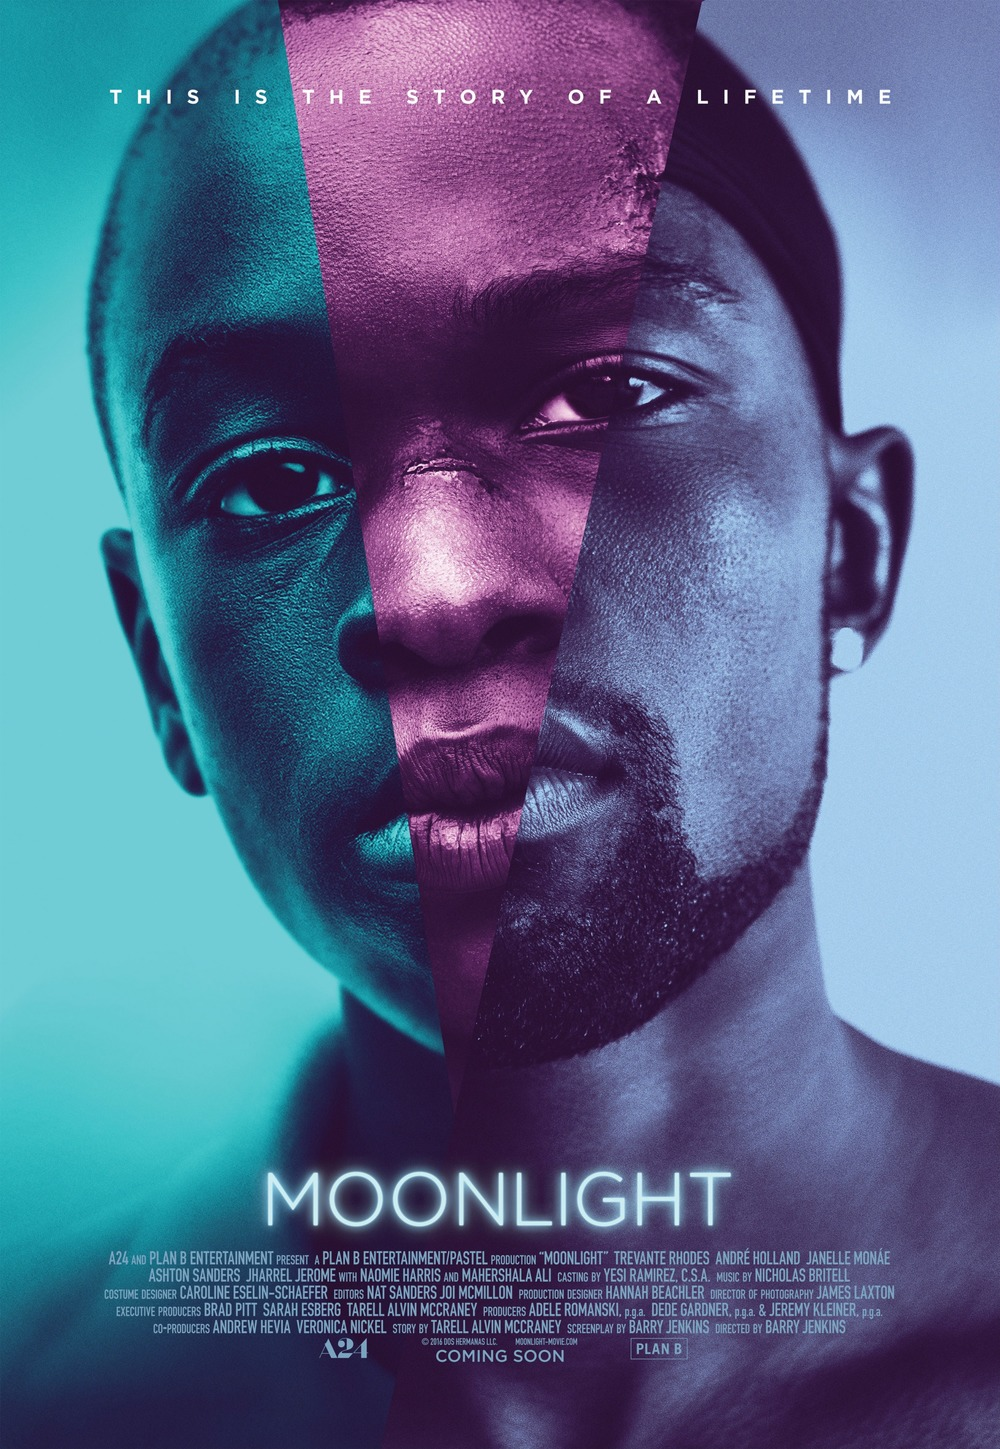 Moonlight Wallpaper for Android - APK Download